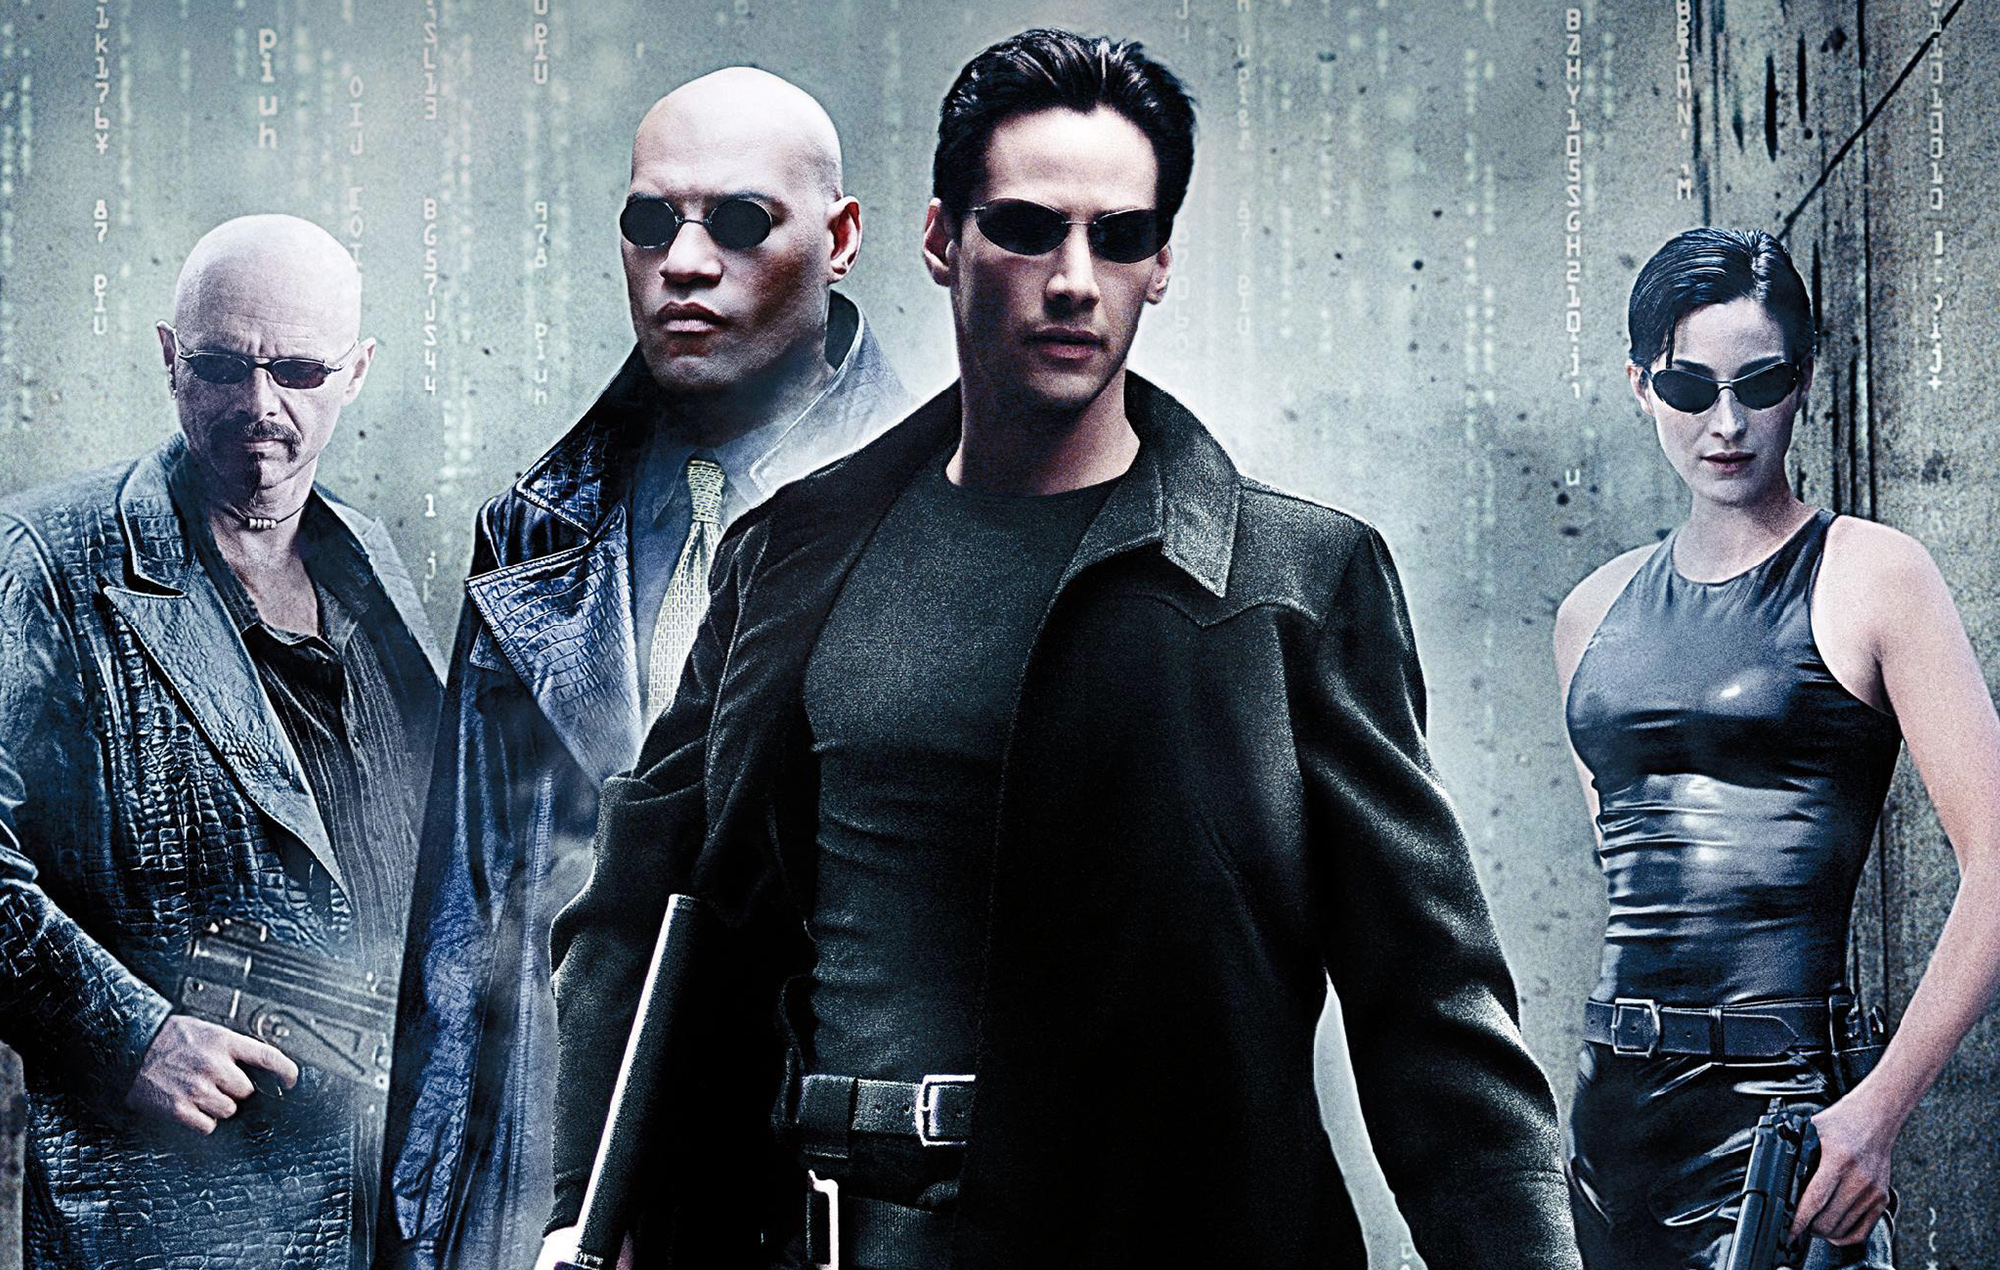 'Matrix 4' official title and new footage revealed at CinemaCon - NME